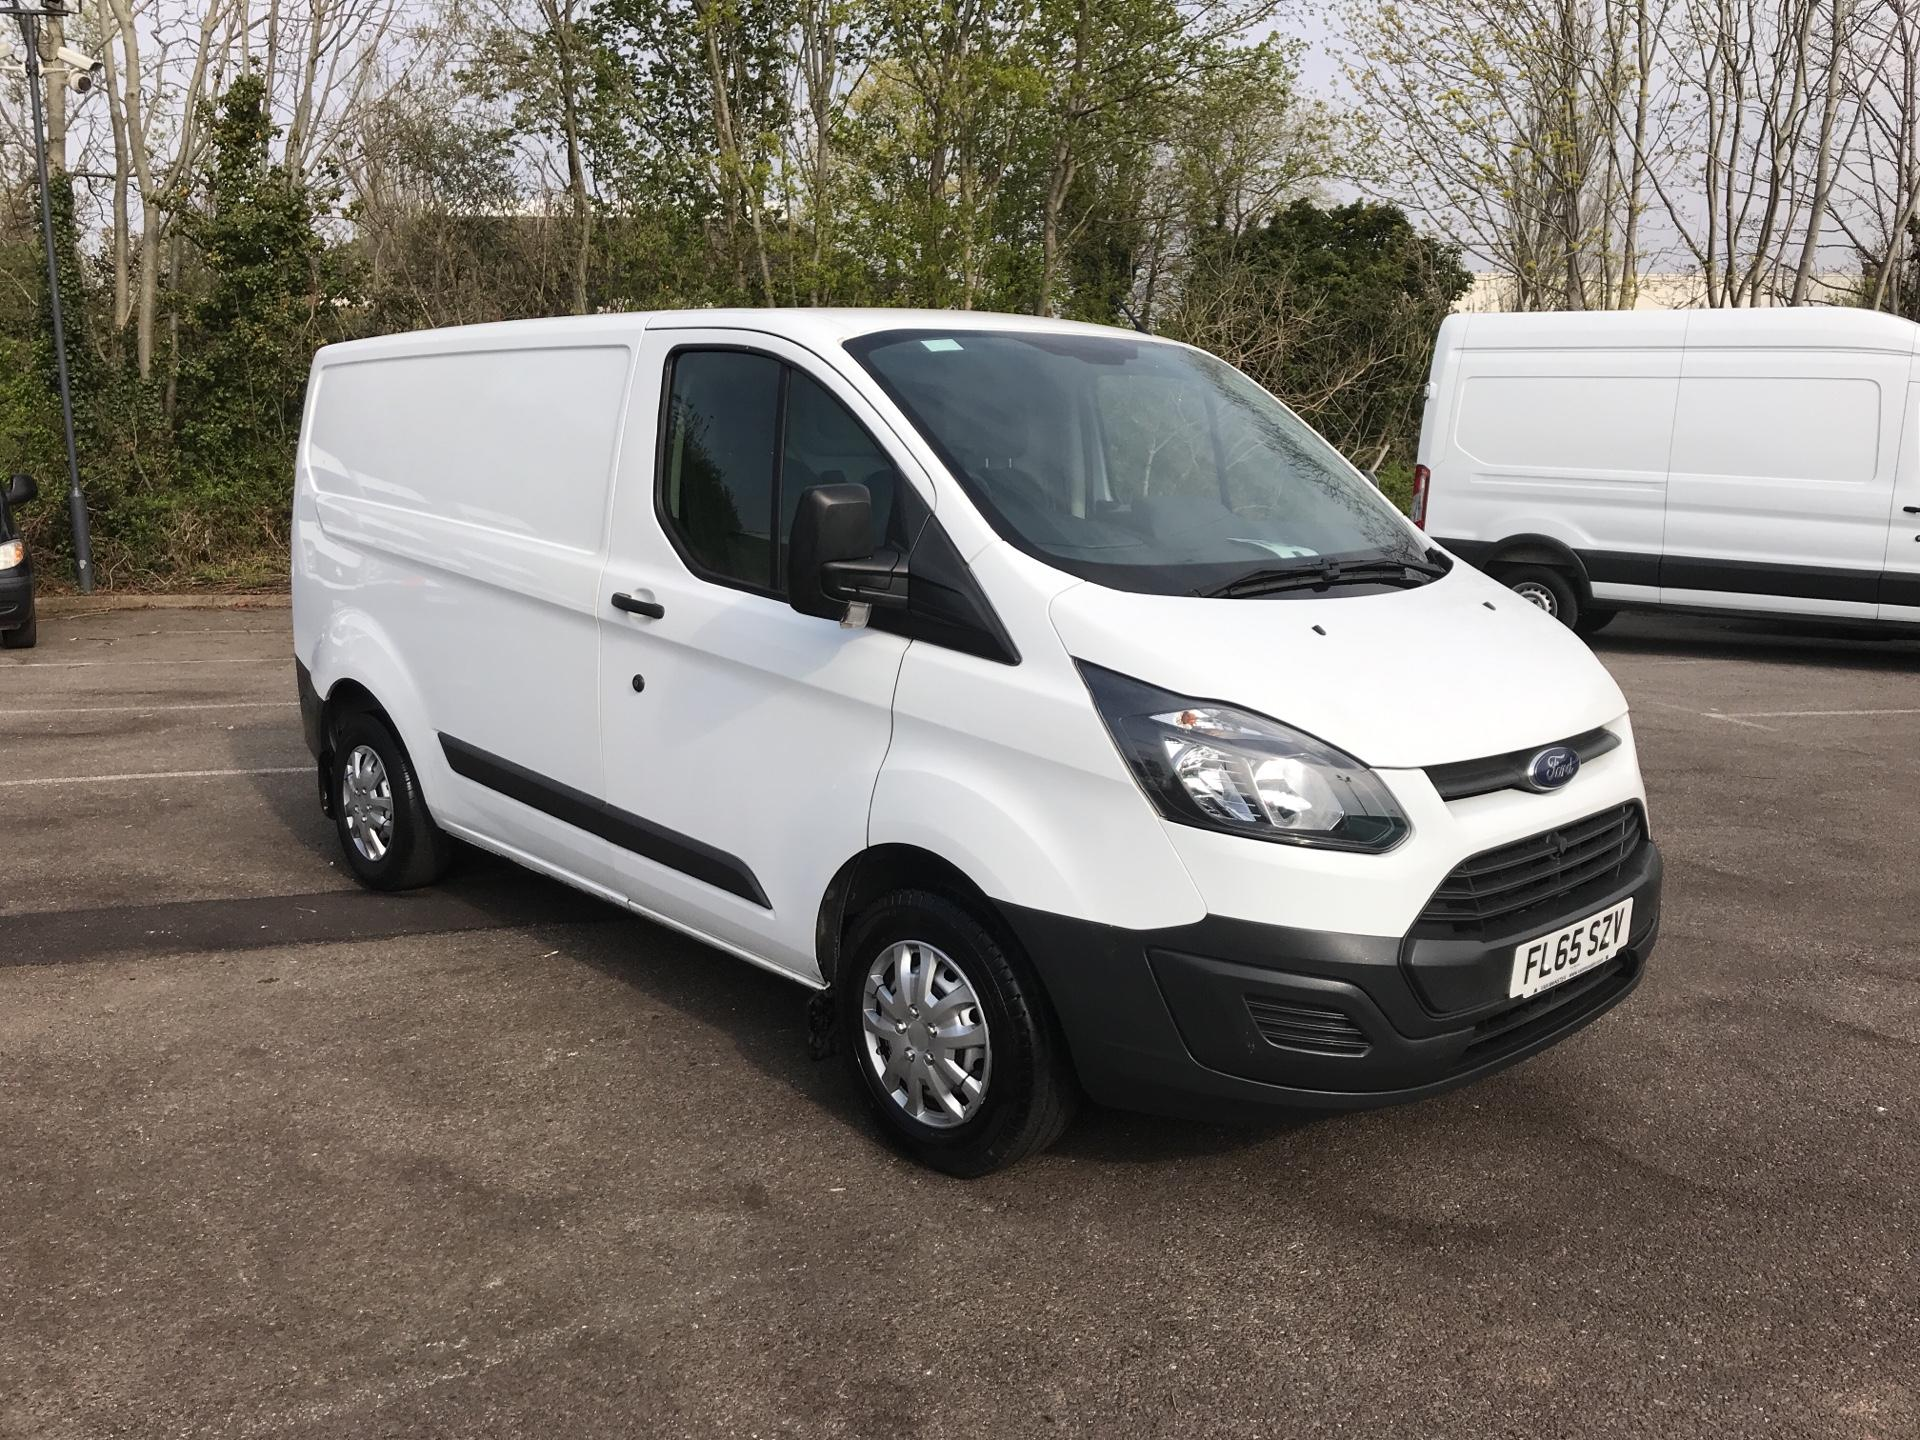 2015 Ford Transit Custom 290 L1 DIESEL FWD 2.2  TDCI 100PS LOW ROOF VAN EURO 5 (FL65SZV)